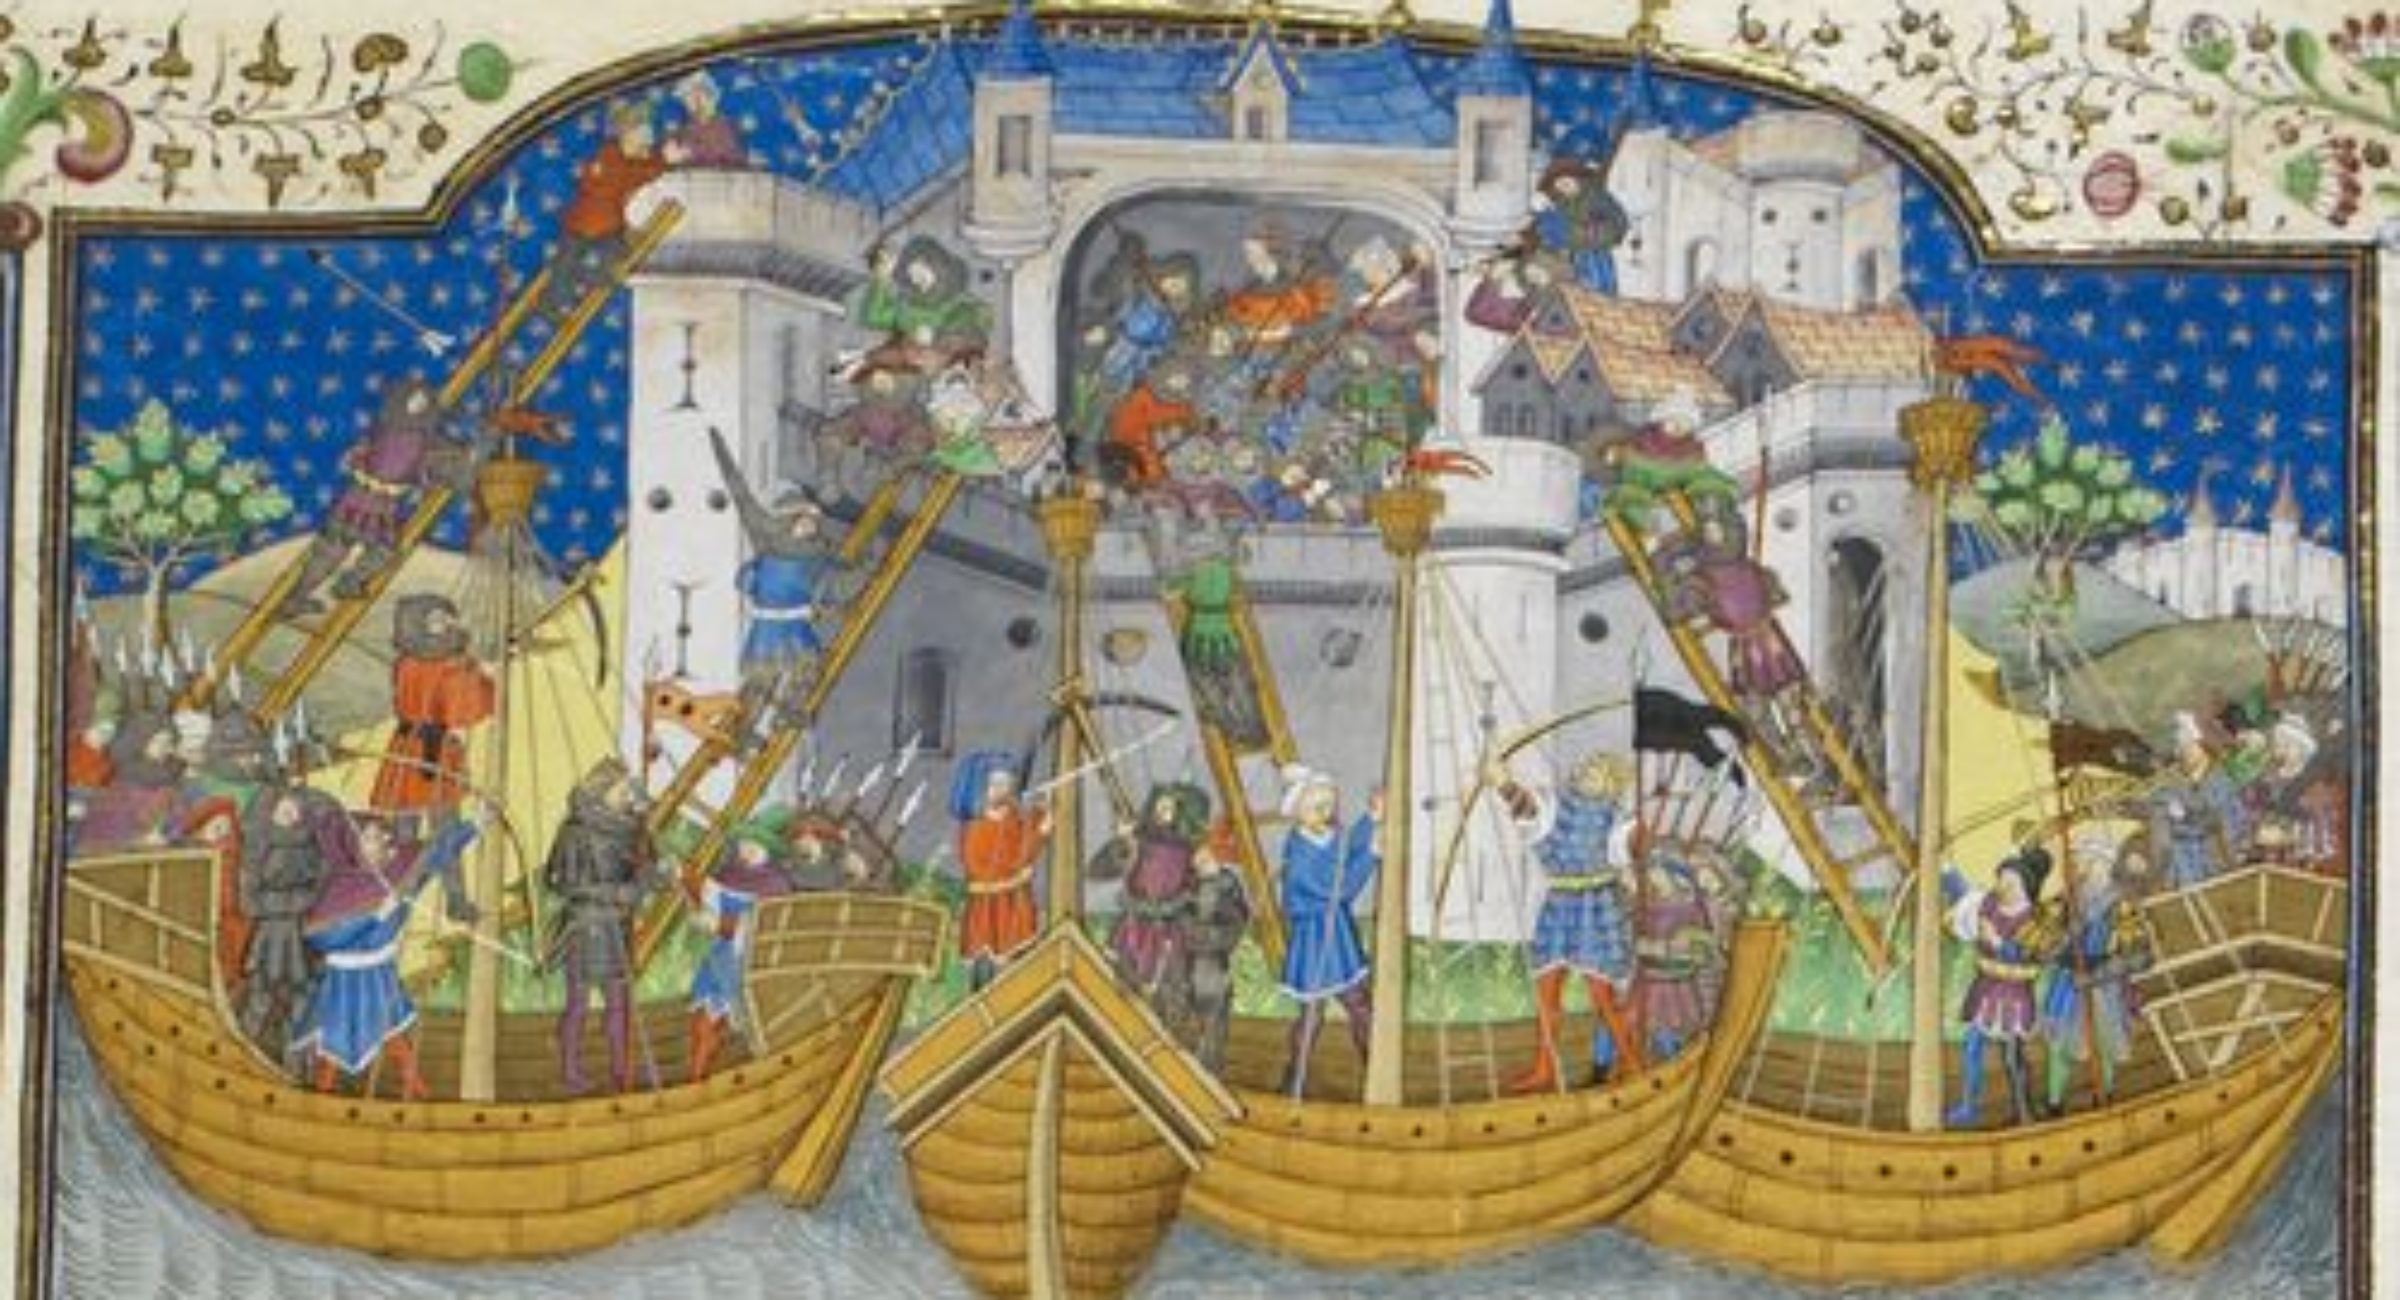 15th century painting - Detail of a miniature of the storming of Corunna by Broadas, from Poems and Romances (the 'Talbot Shrewsbury book'), France (Rouen), c. 1445, Royal 15 E. vi, f. 207r